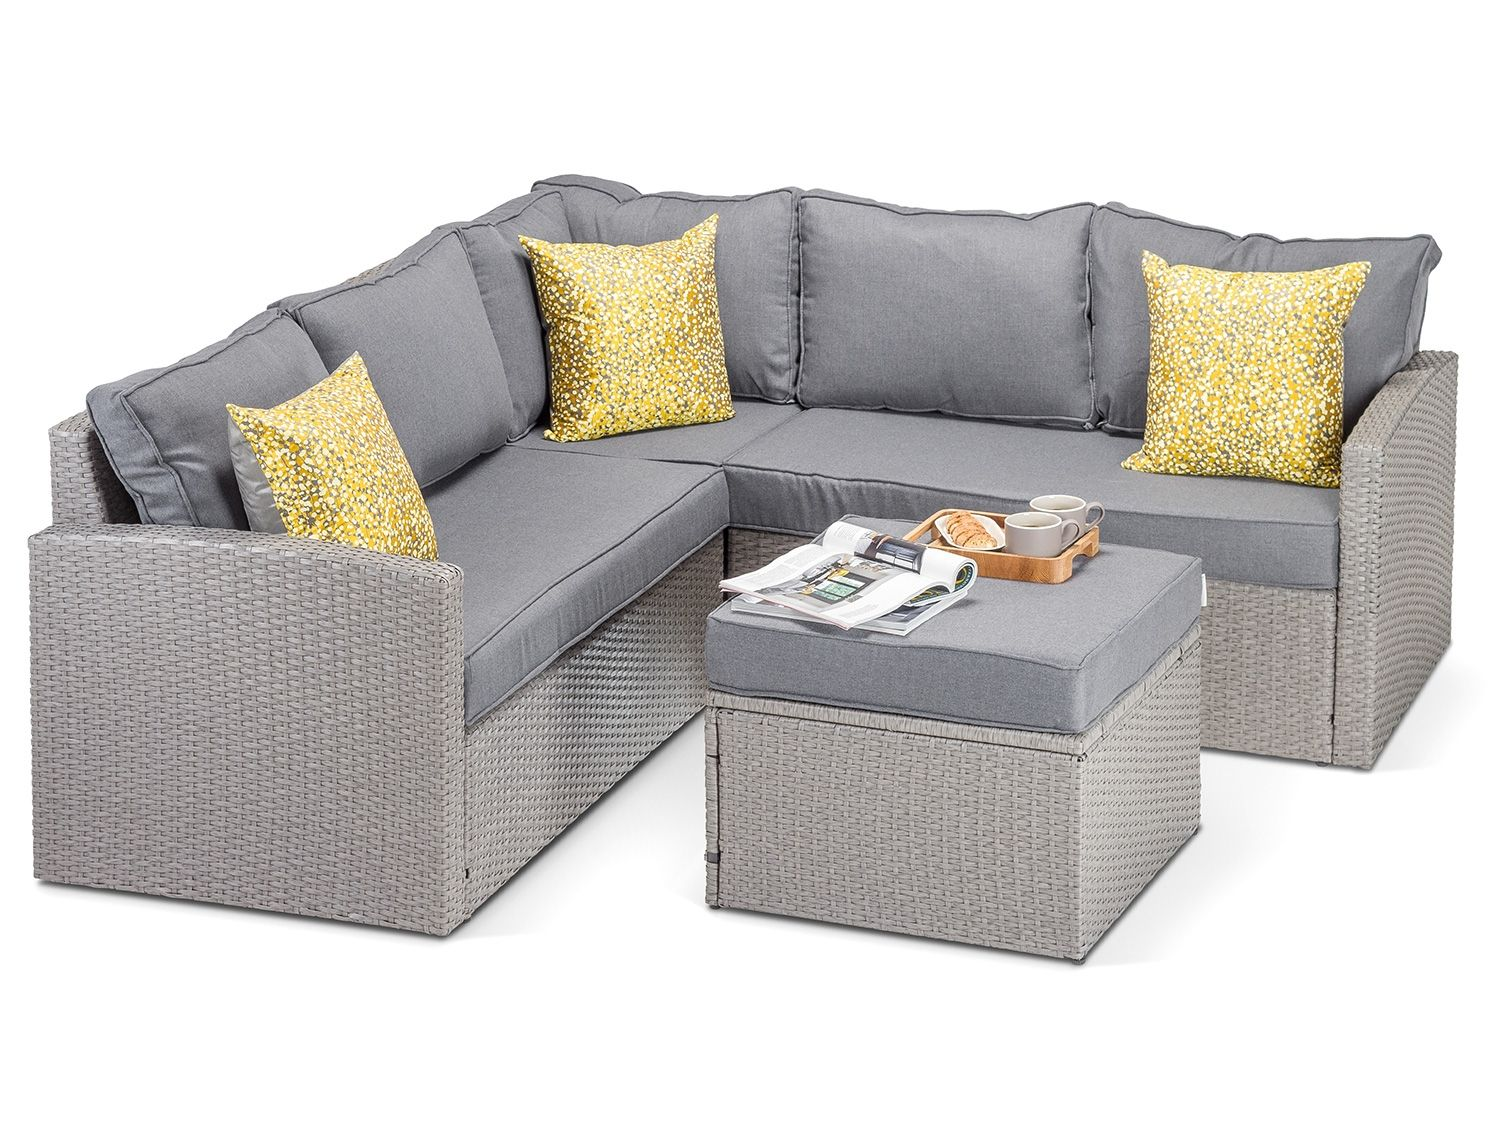 Rattan Verona Grey Corner Sofa With Dining Table Rattan Corner Sofa Grey Rattan Corner Sofa Rattan Garden Furniture